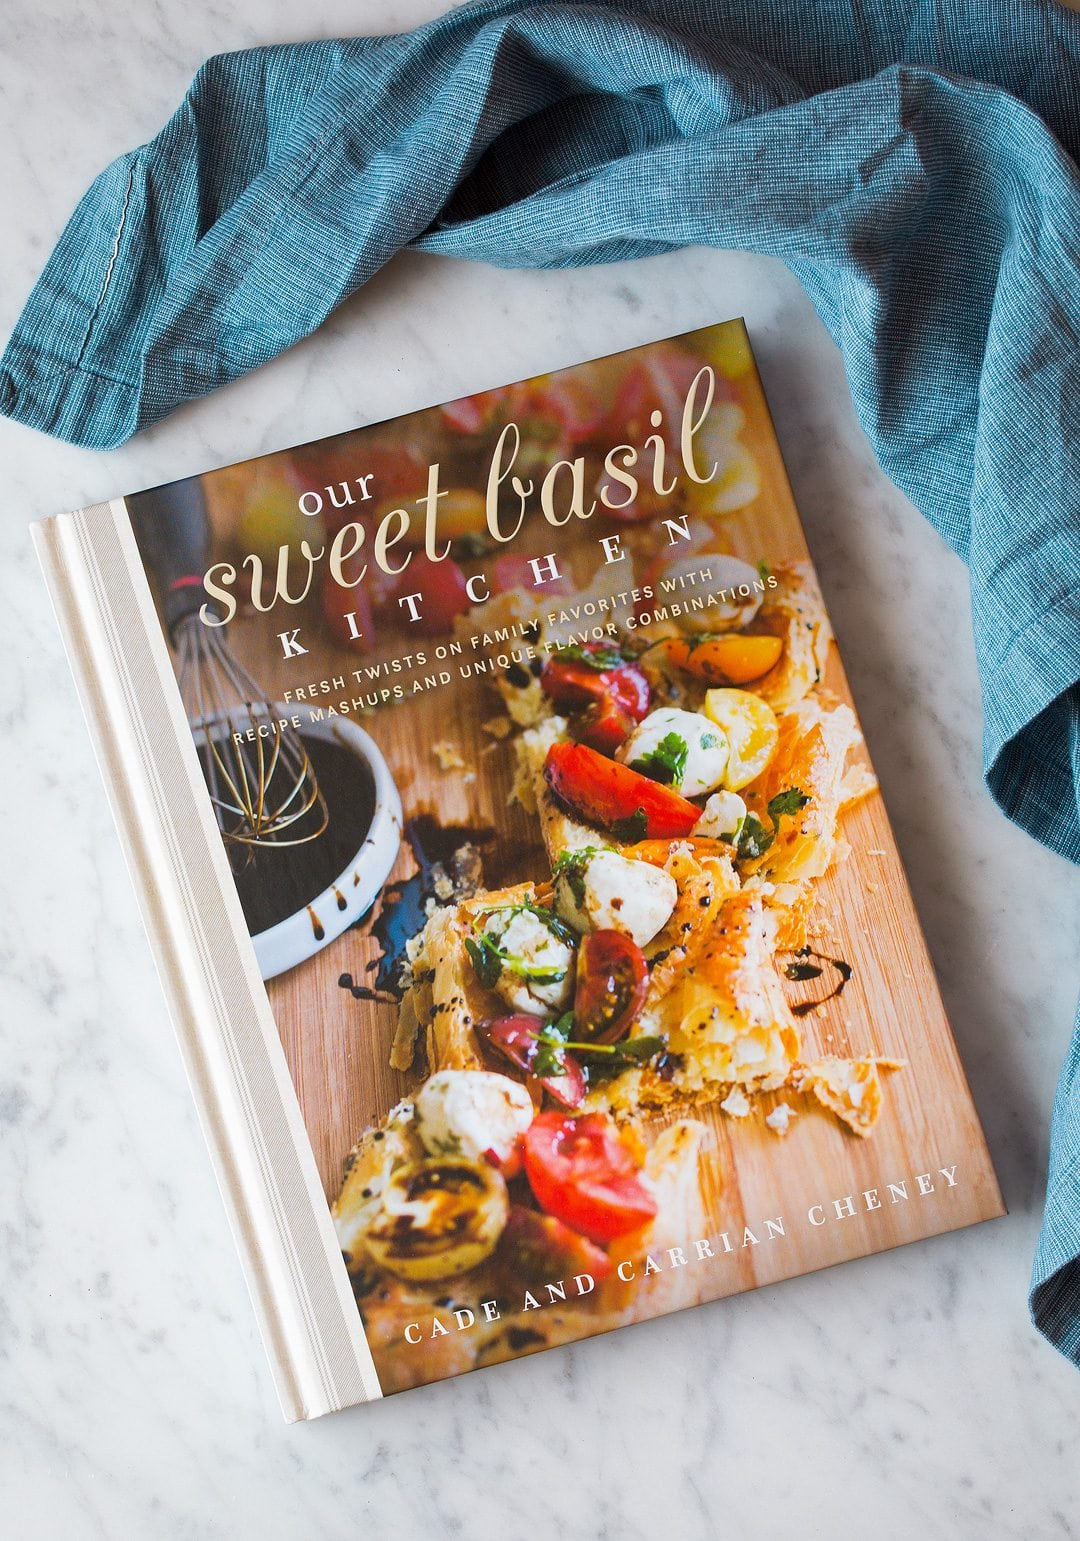 our sweet basil kitchen cookbook on counter with blue towel